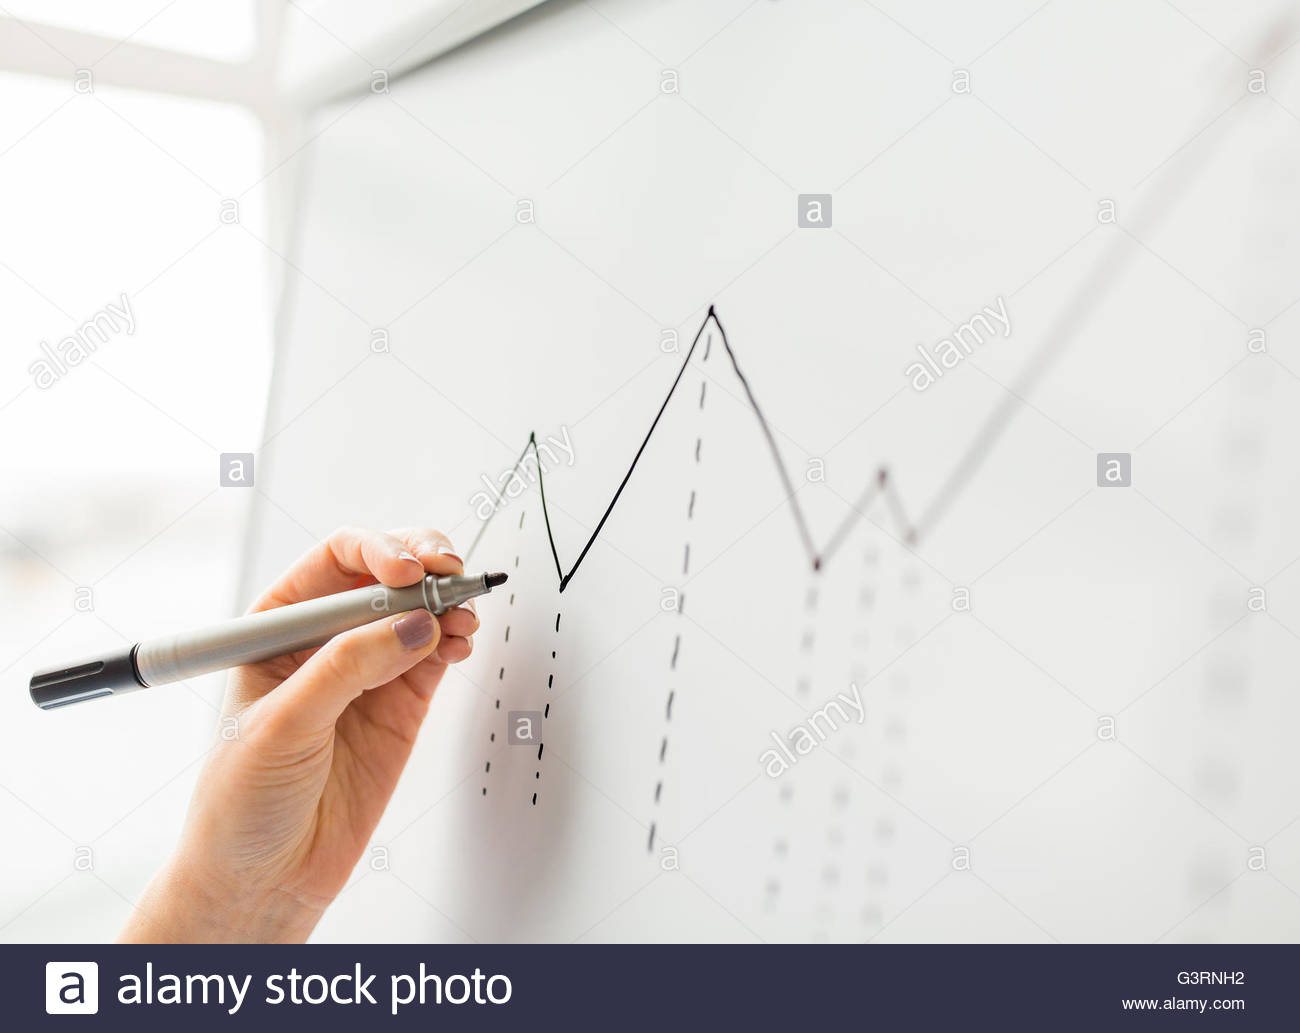 1300x1033 Close Up Of Hand Drawing Graph On Flip Chart Stock Photo, Royalty